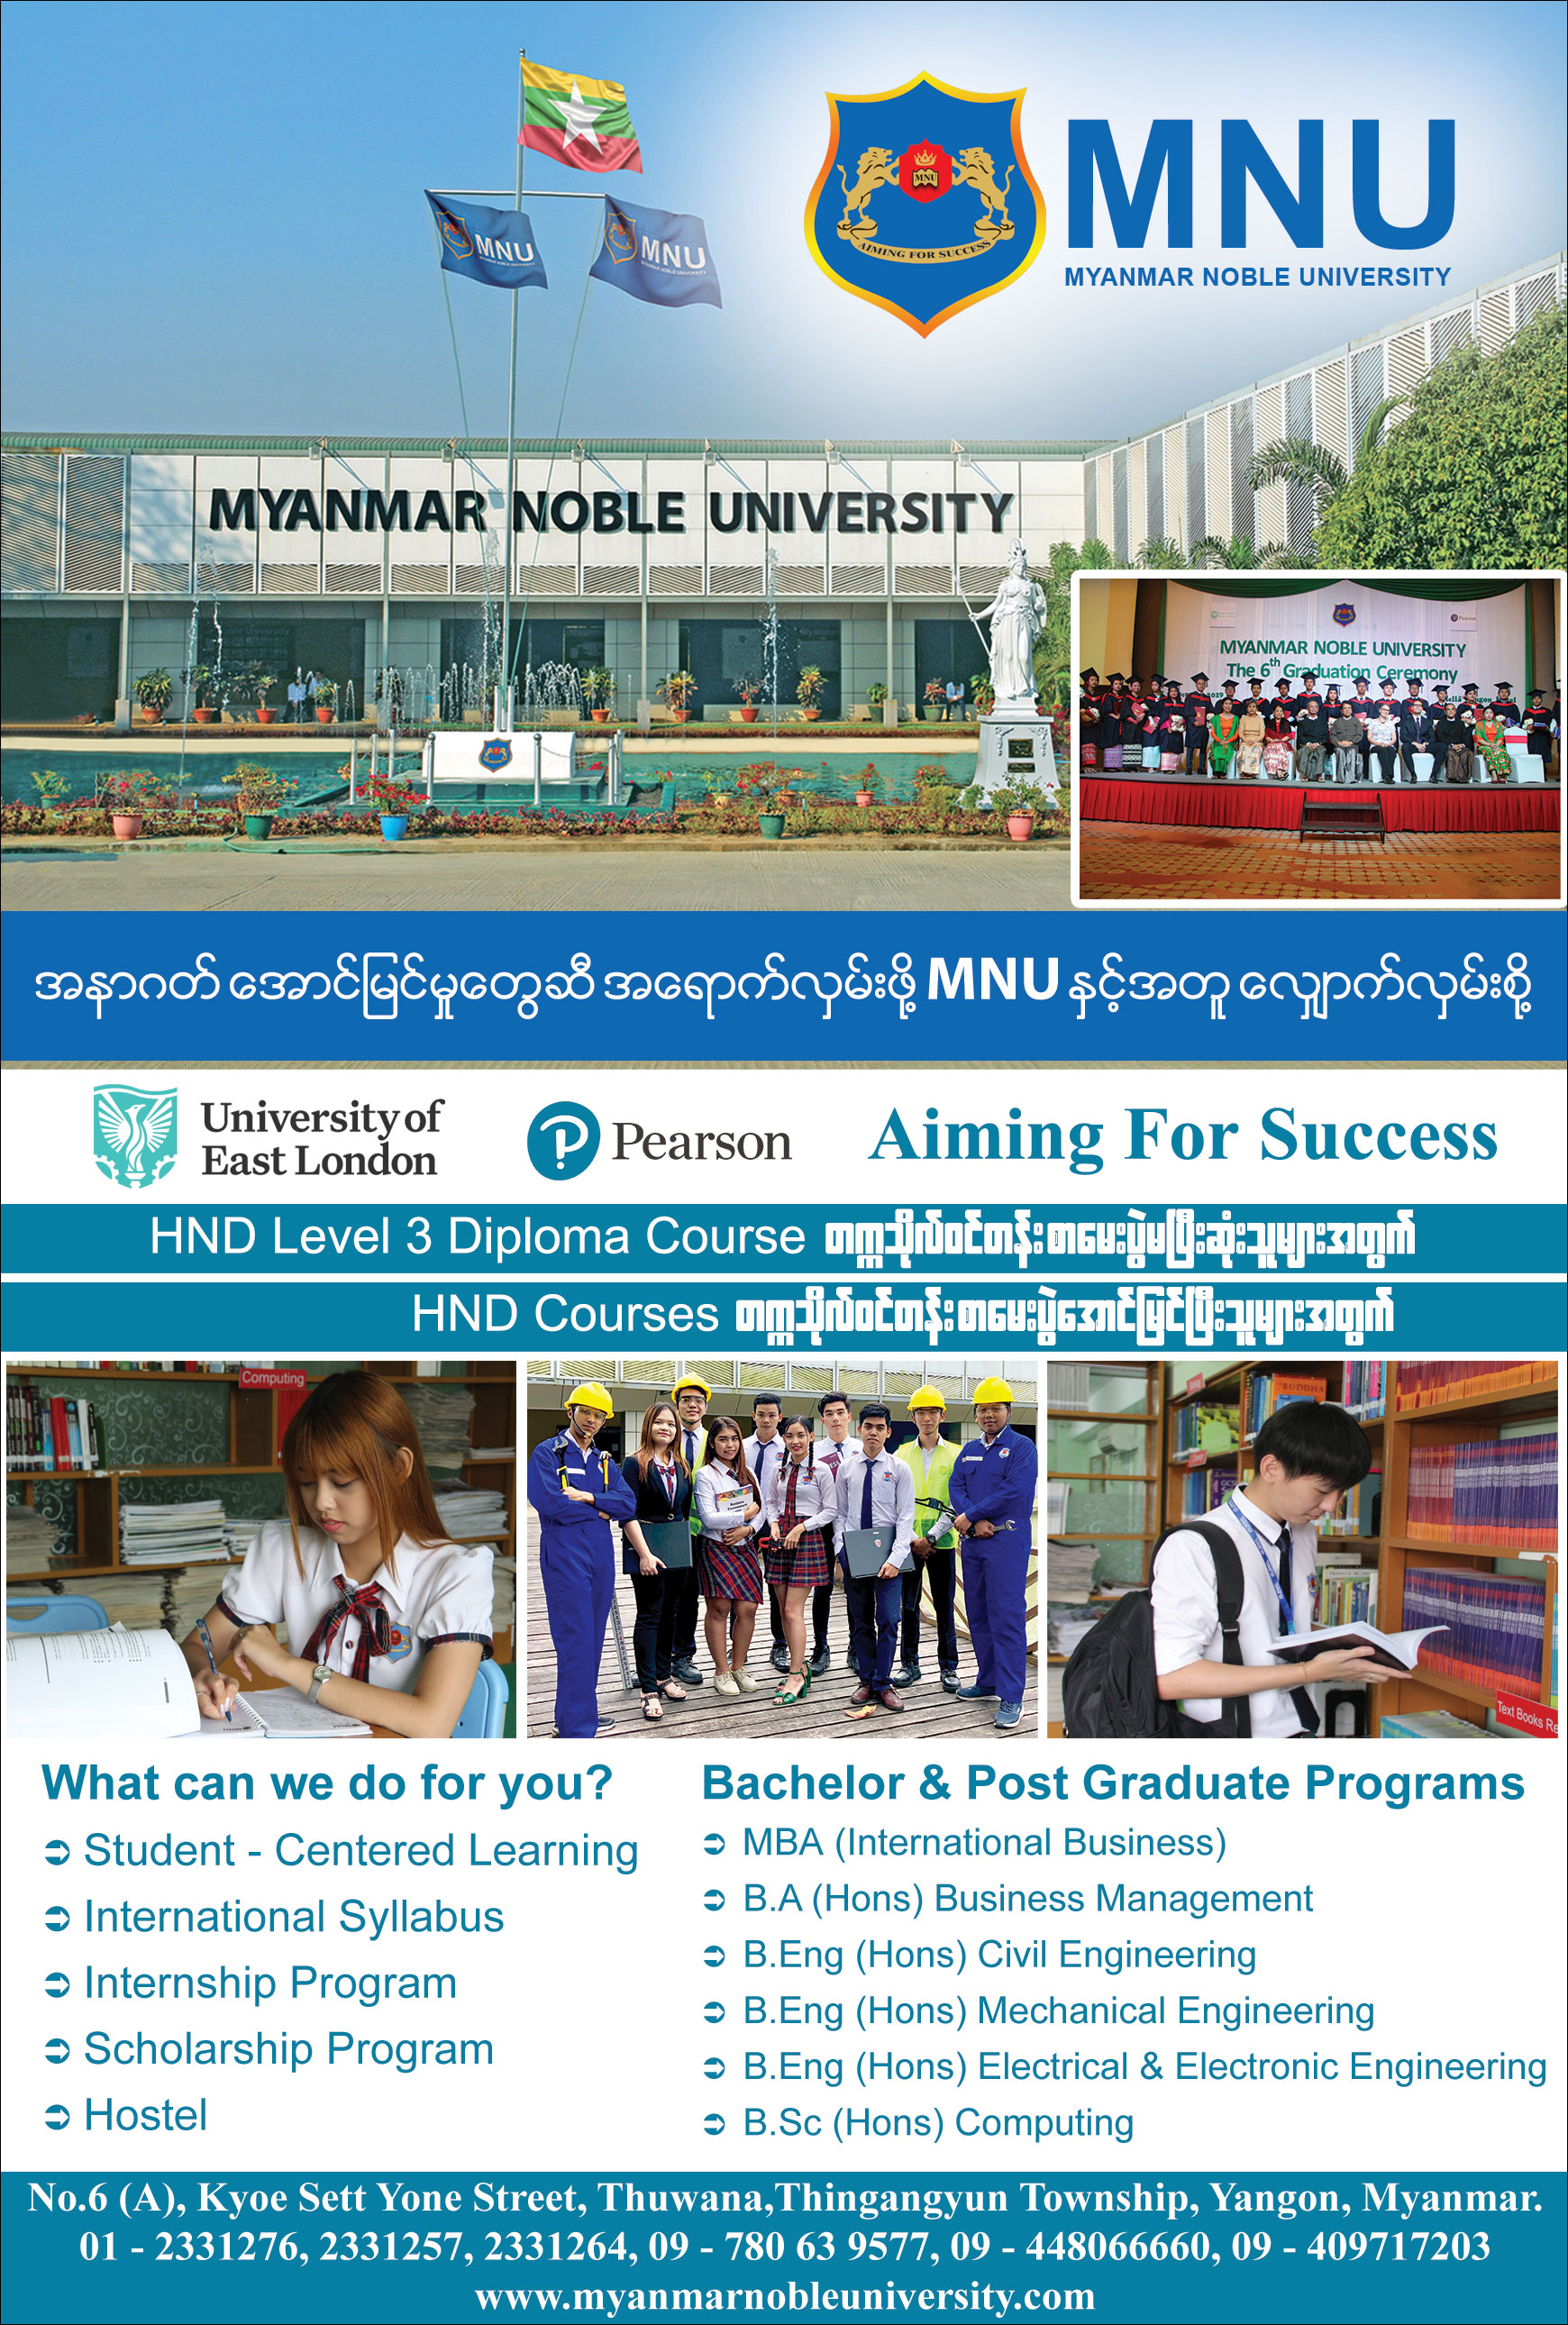 Myanmar-Noble-University-(MNU)_International-Universities-&-Colleges_(F)_136.jpg